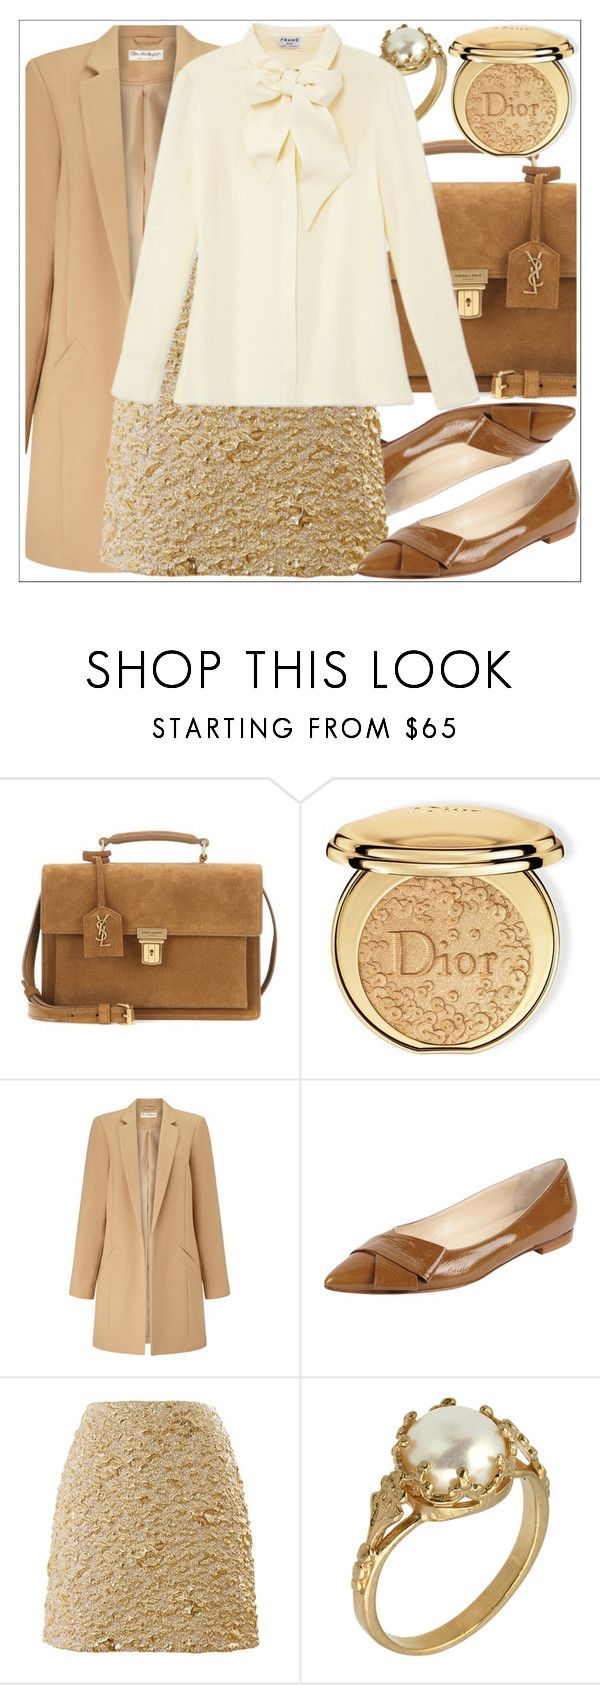 """cold coffee - ed sheeran"" by hanasykes ❤ liked on Polyvore featuring Yves Saint Laurent, Christian Dior, Miss Selfridge, Butter Shoes, Kenzo and Frame"